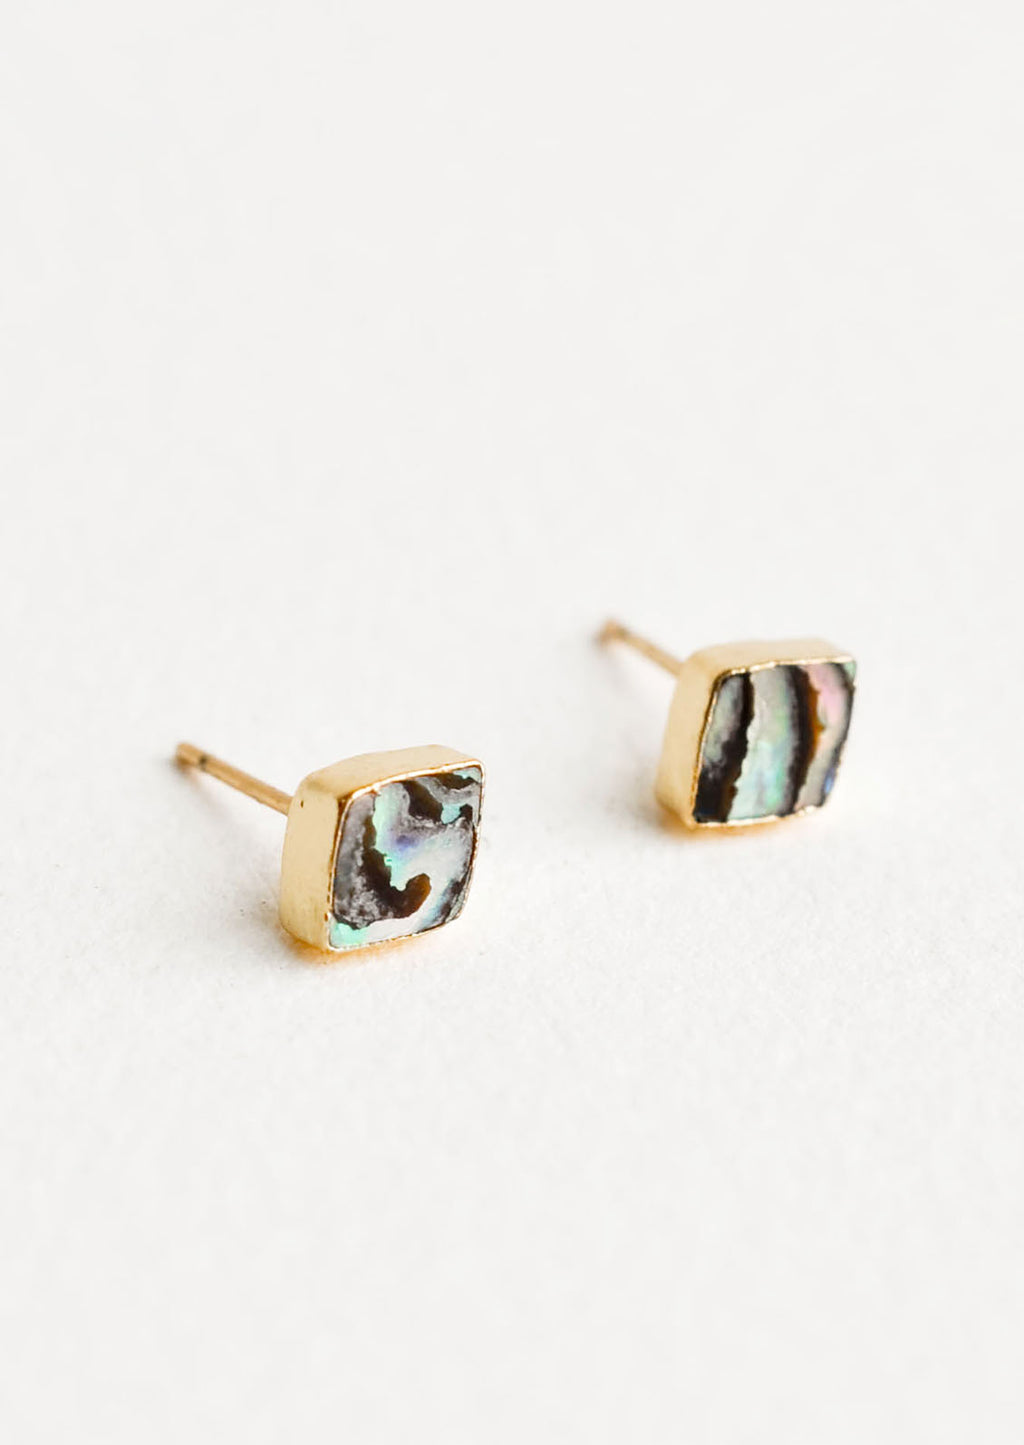 1: Diamond shape stud earrings with flush set stone. Abalone shell surrounded by gold trim.